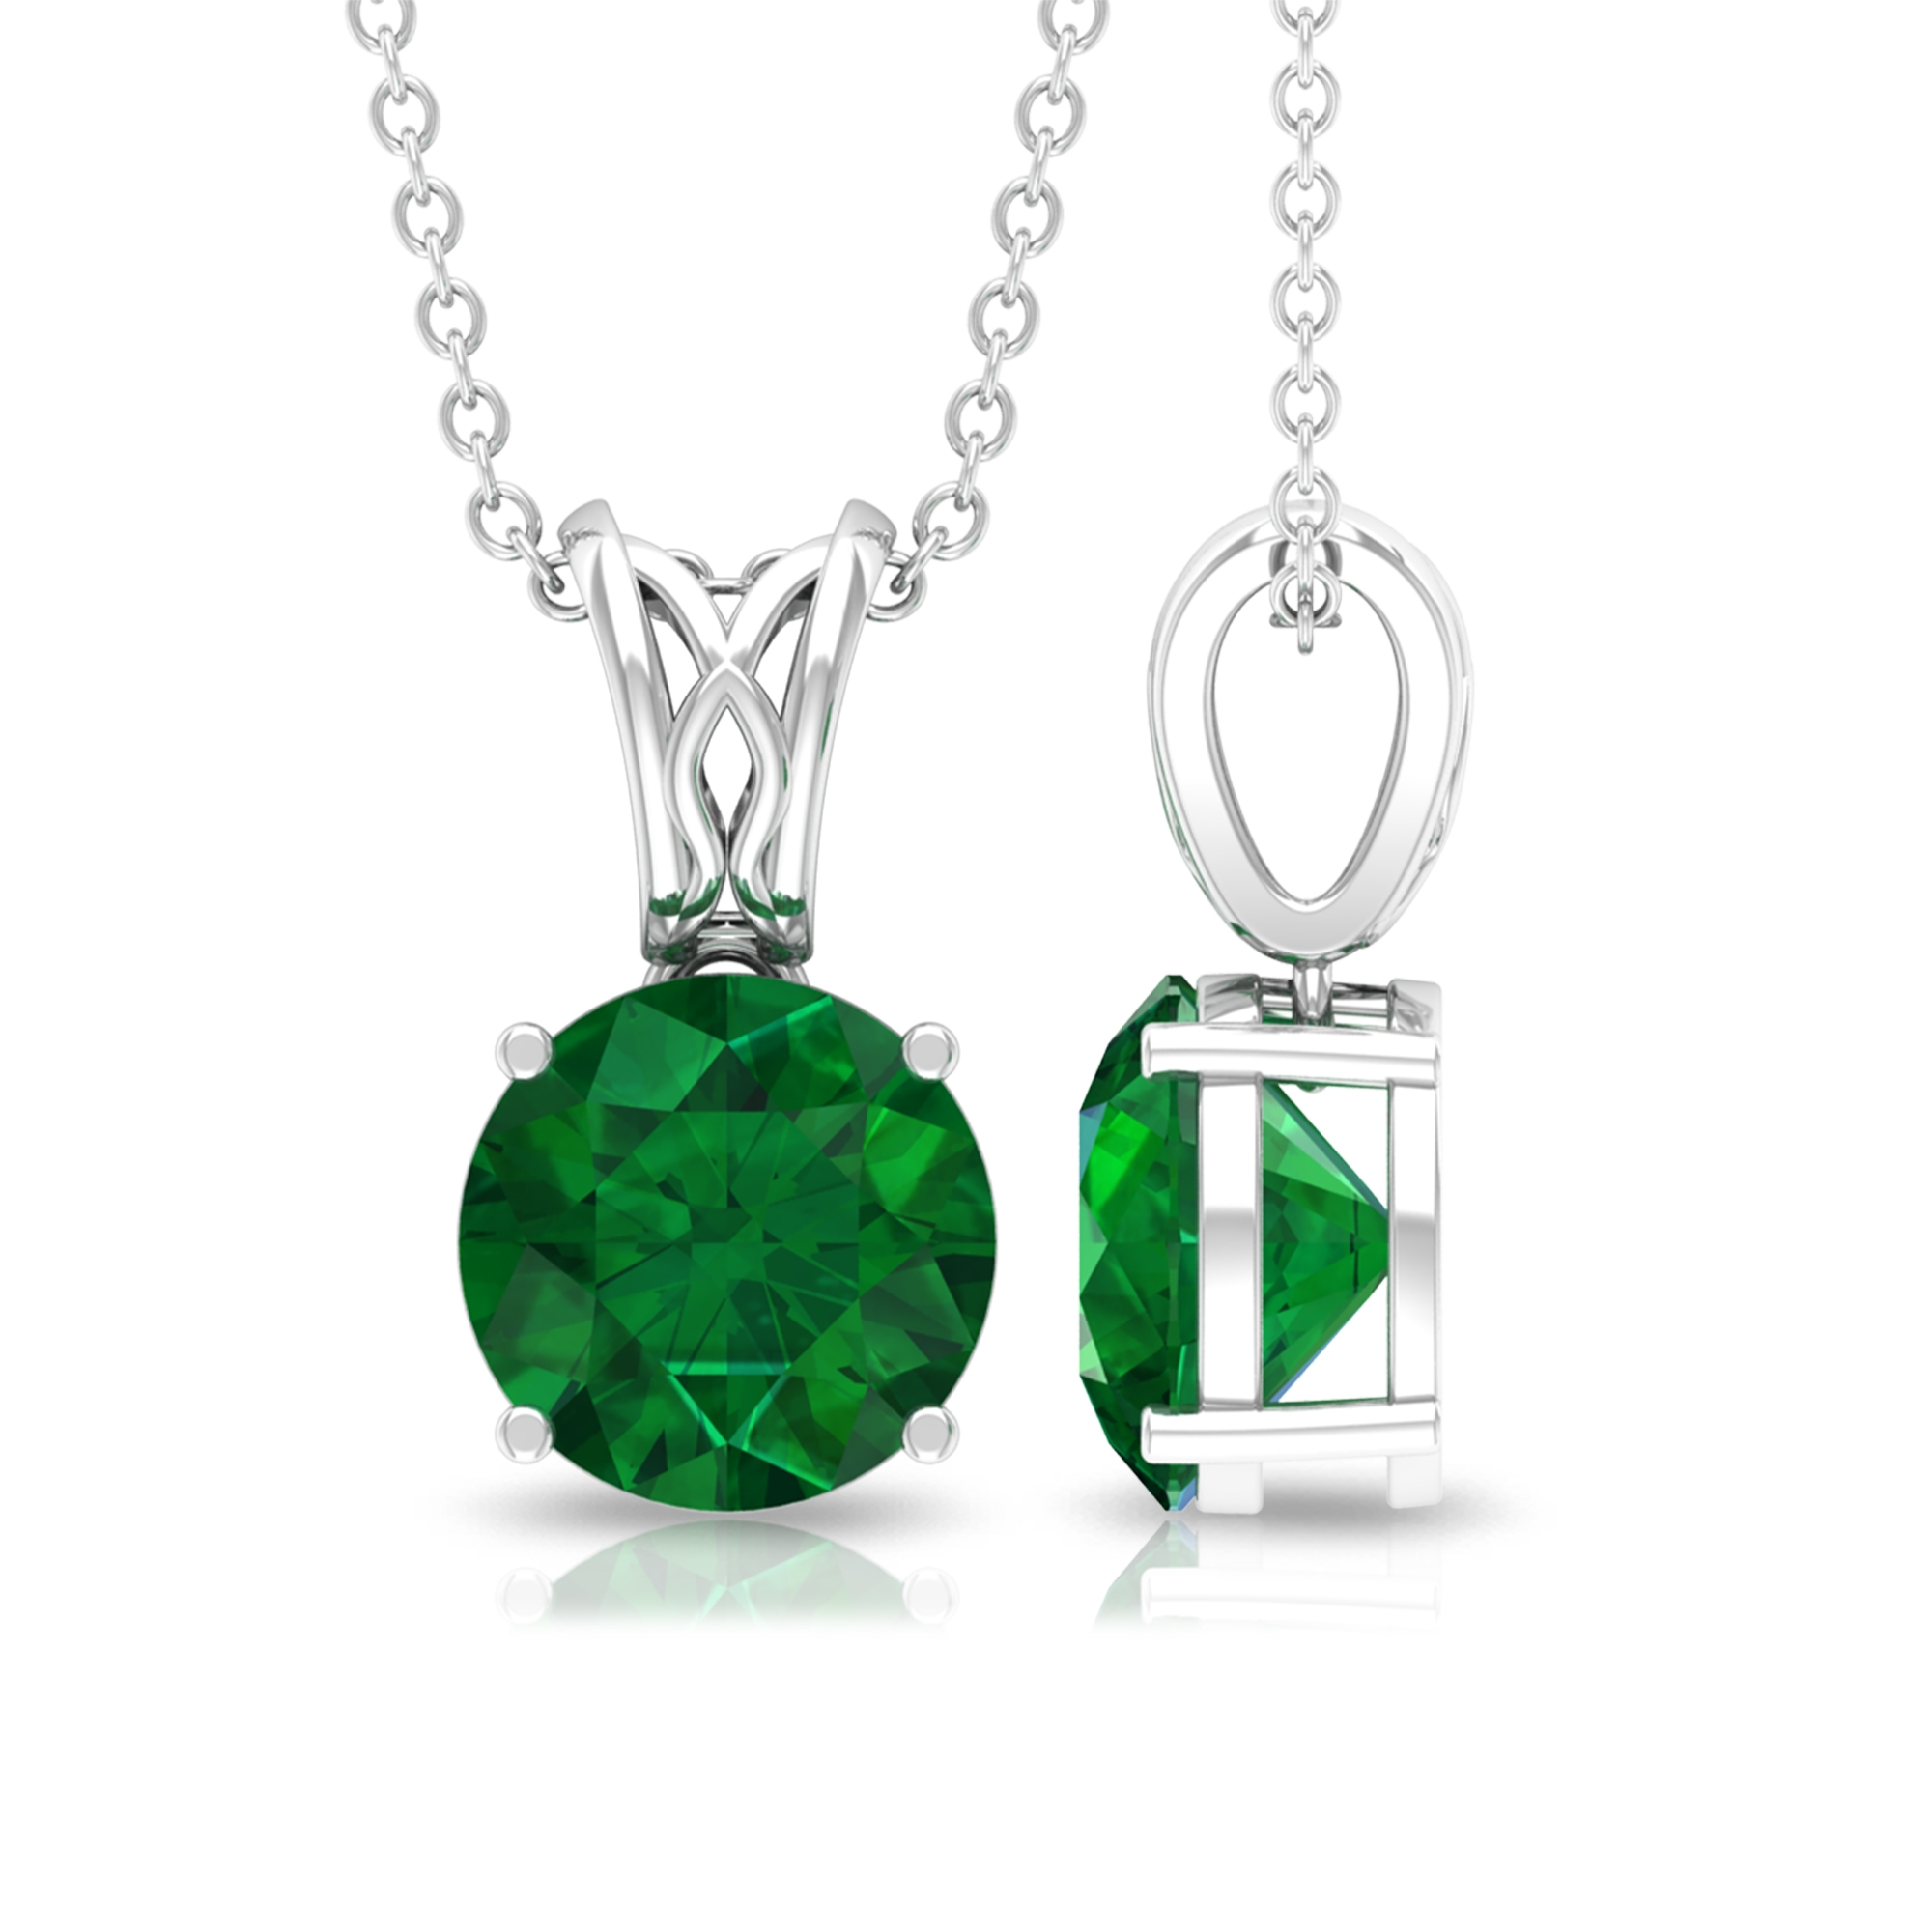 8 MM Round Cut Solitaire Emerald Pendant in Four Prong Set with Decorative Bale